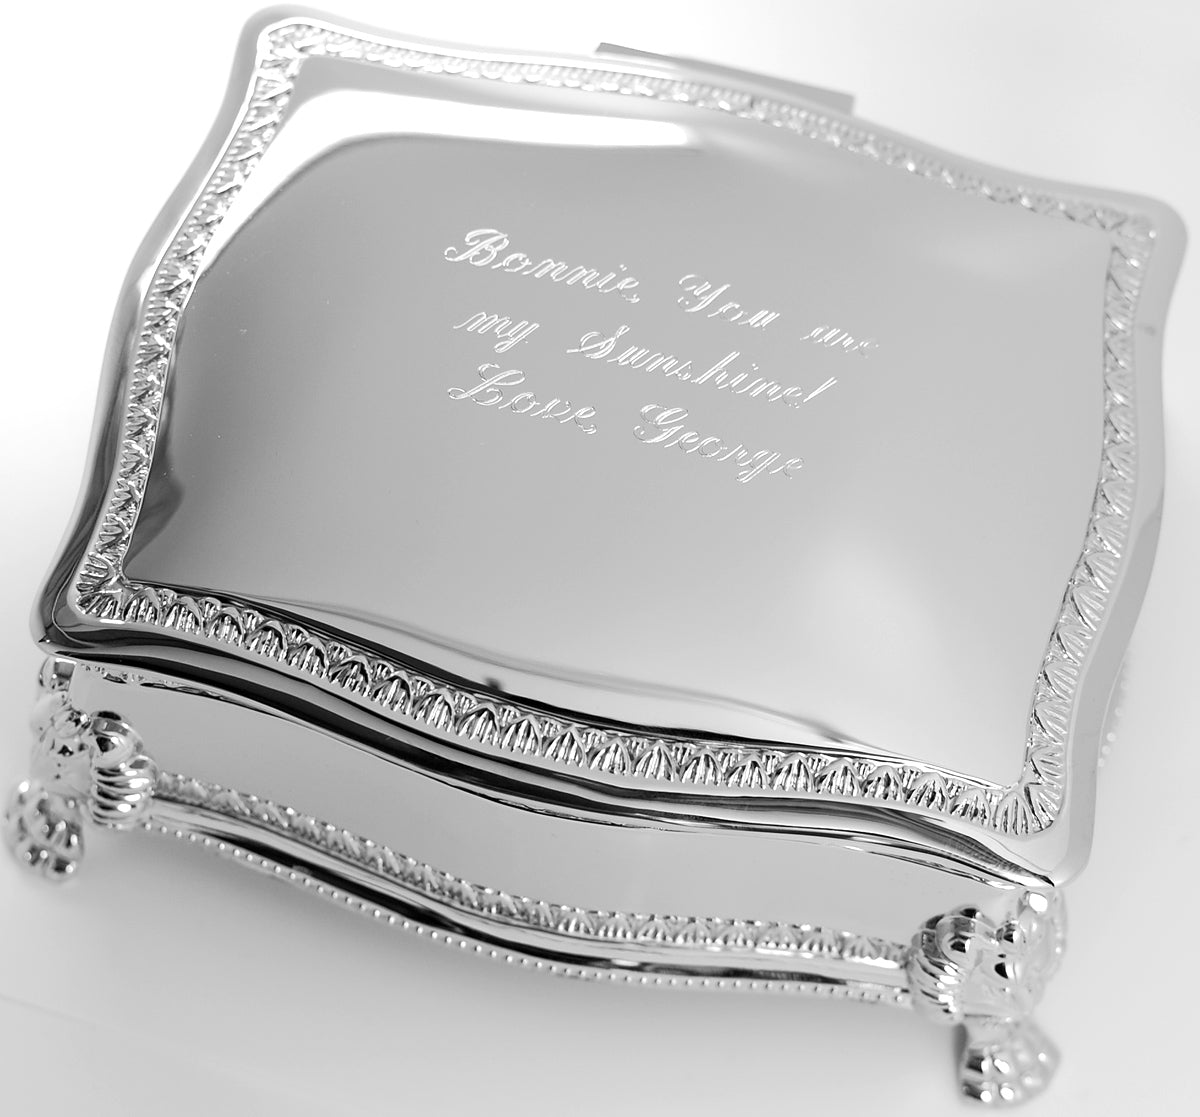 Personalized Victorian 6 Inch Jewelry Box Engraved With Name Or Monogram